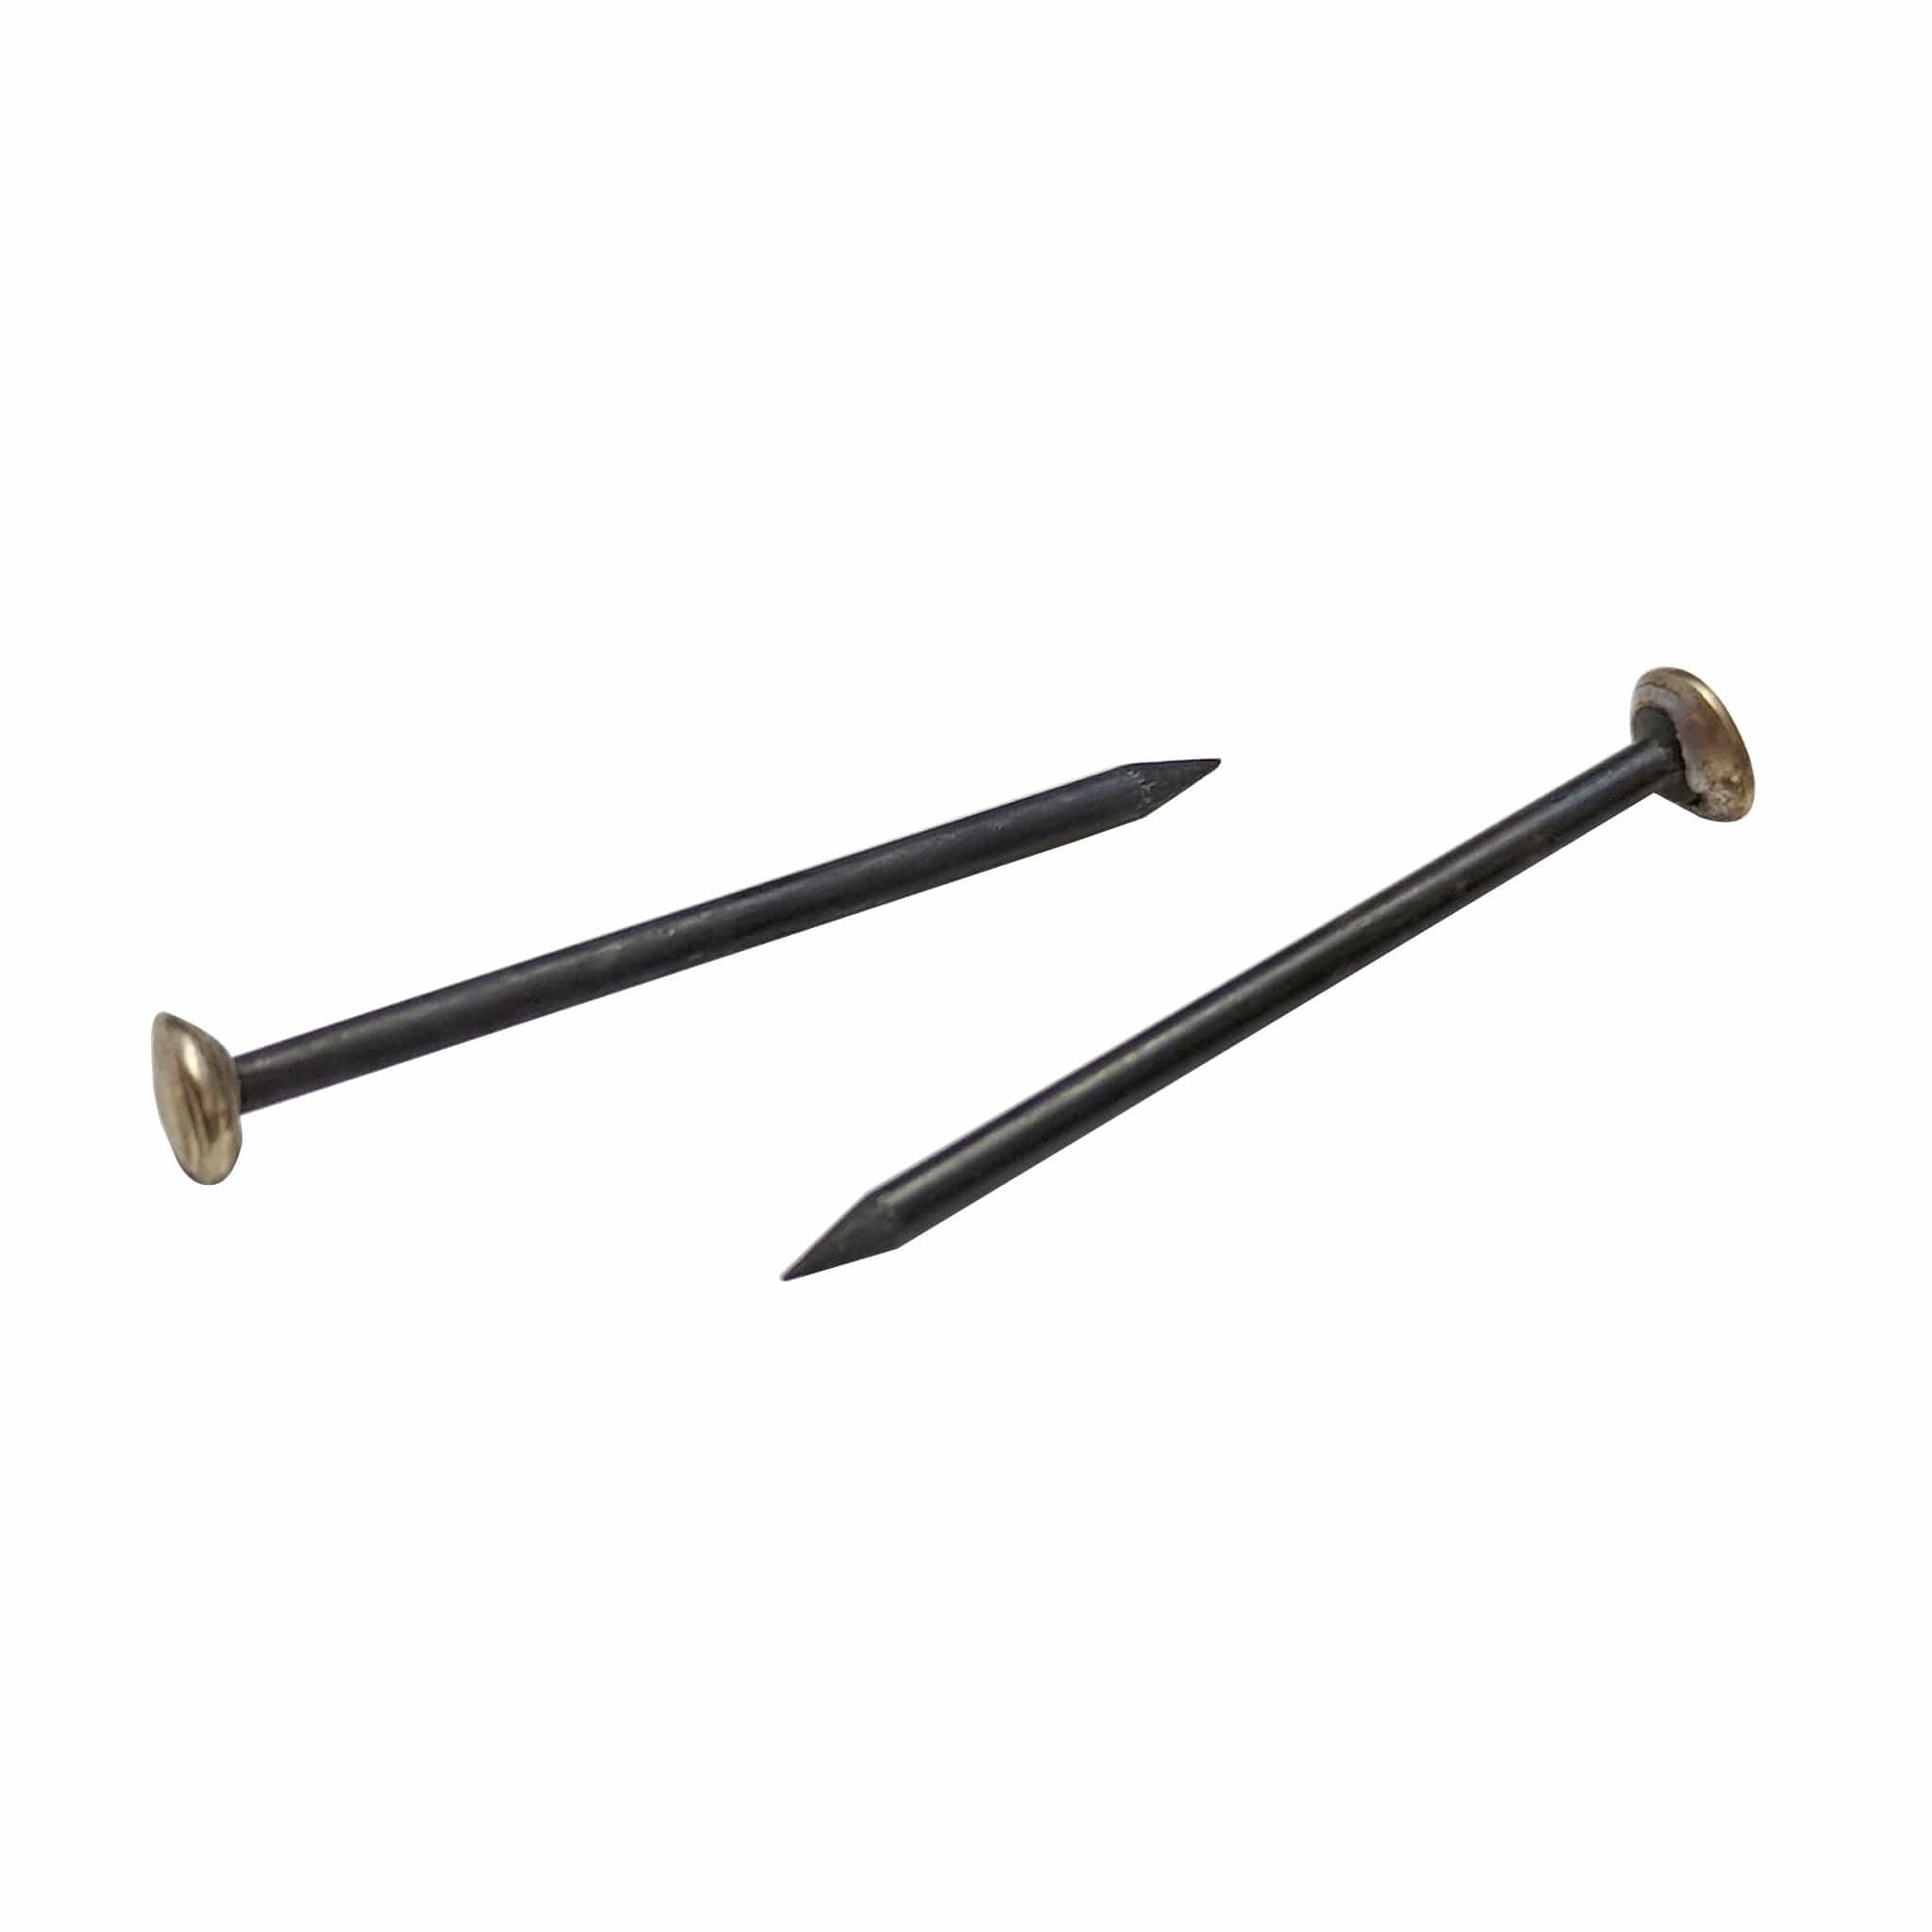 Brass Capped Steel Nails - pack of 100